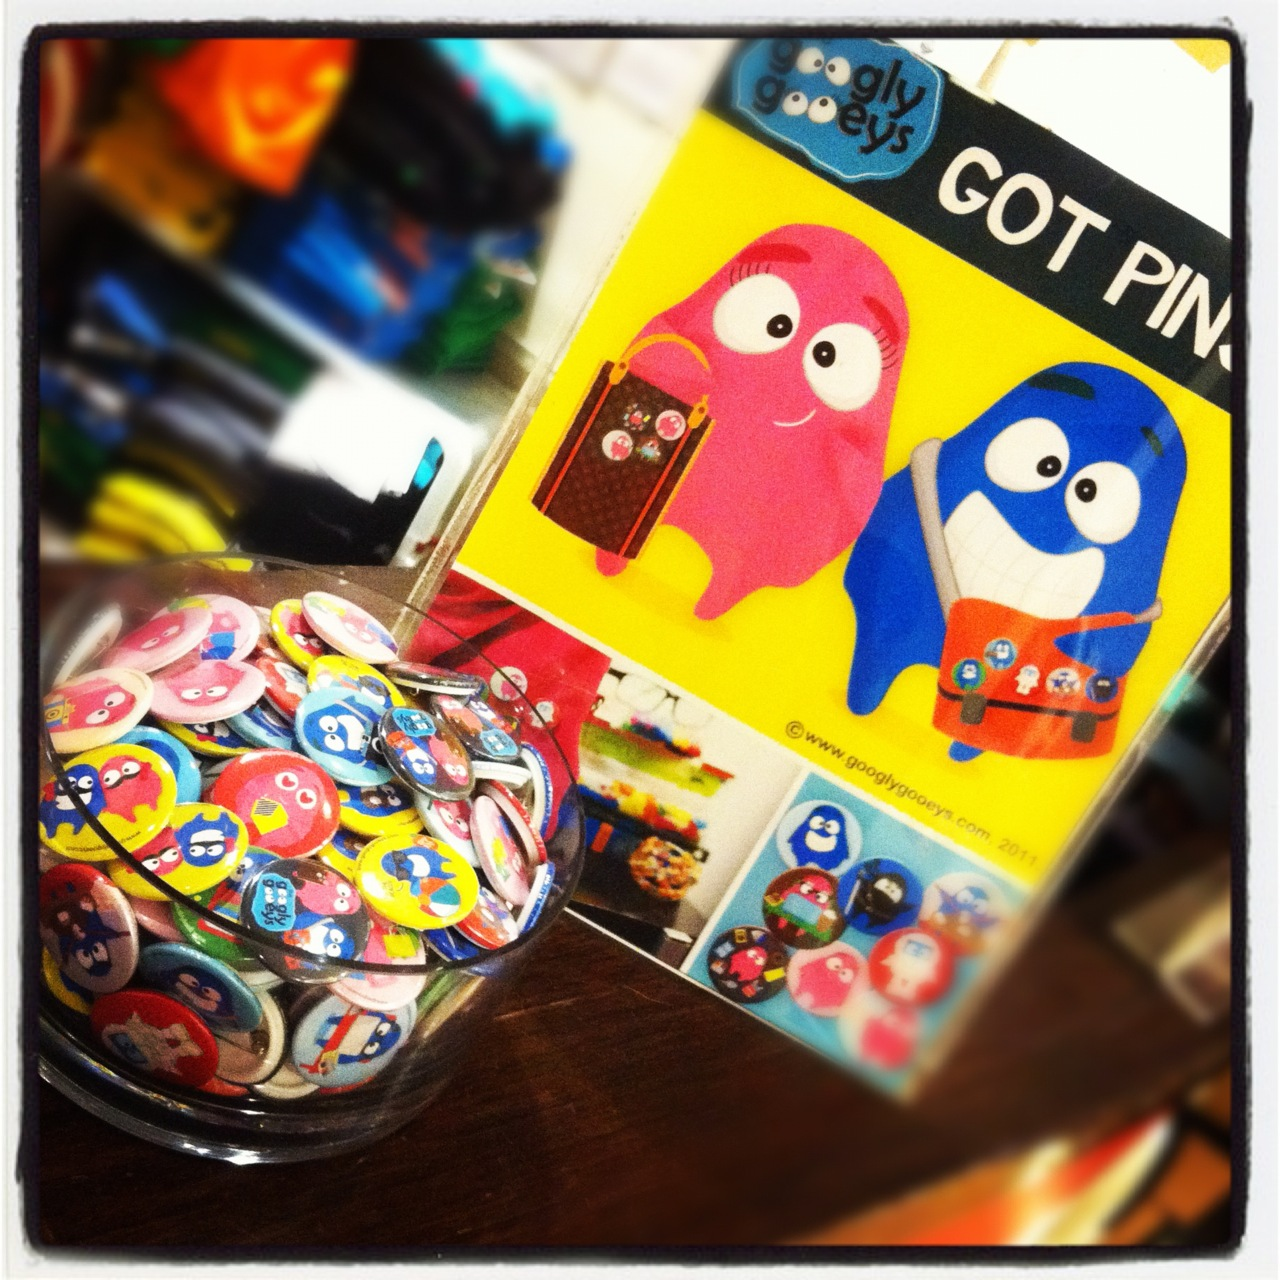 Get your Googly Gooey pins this weekend! :)